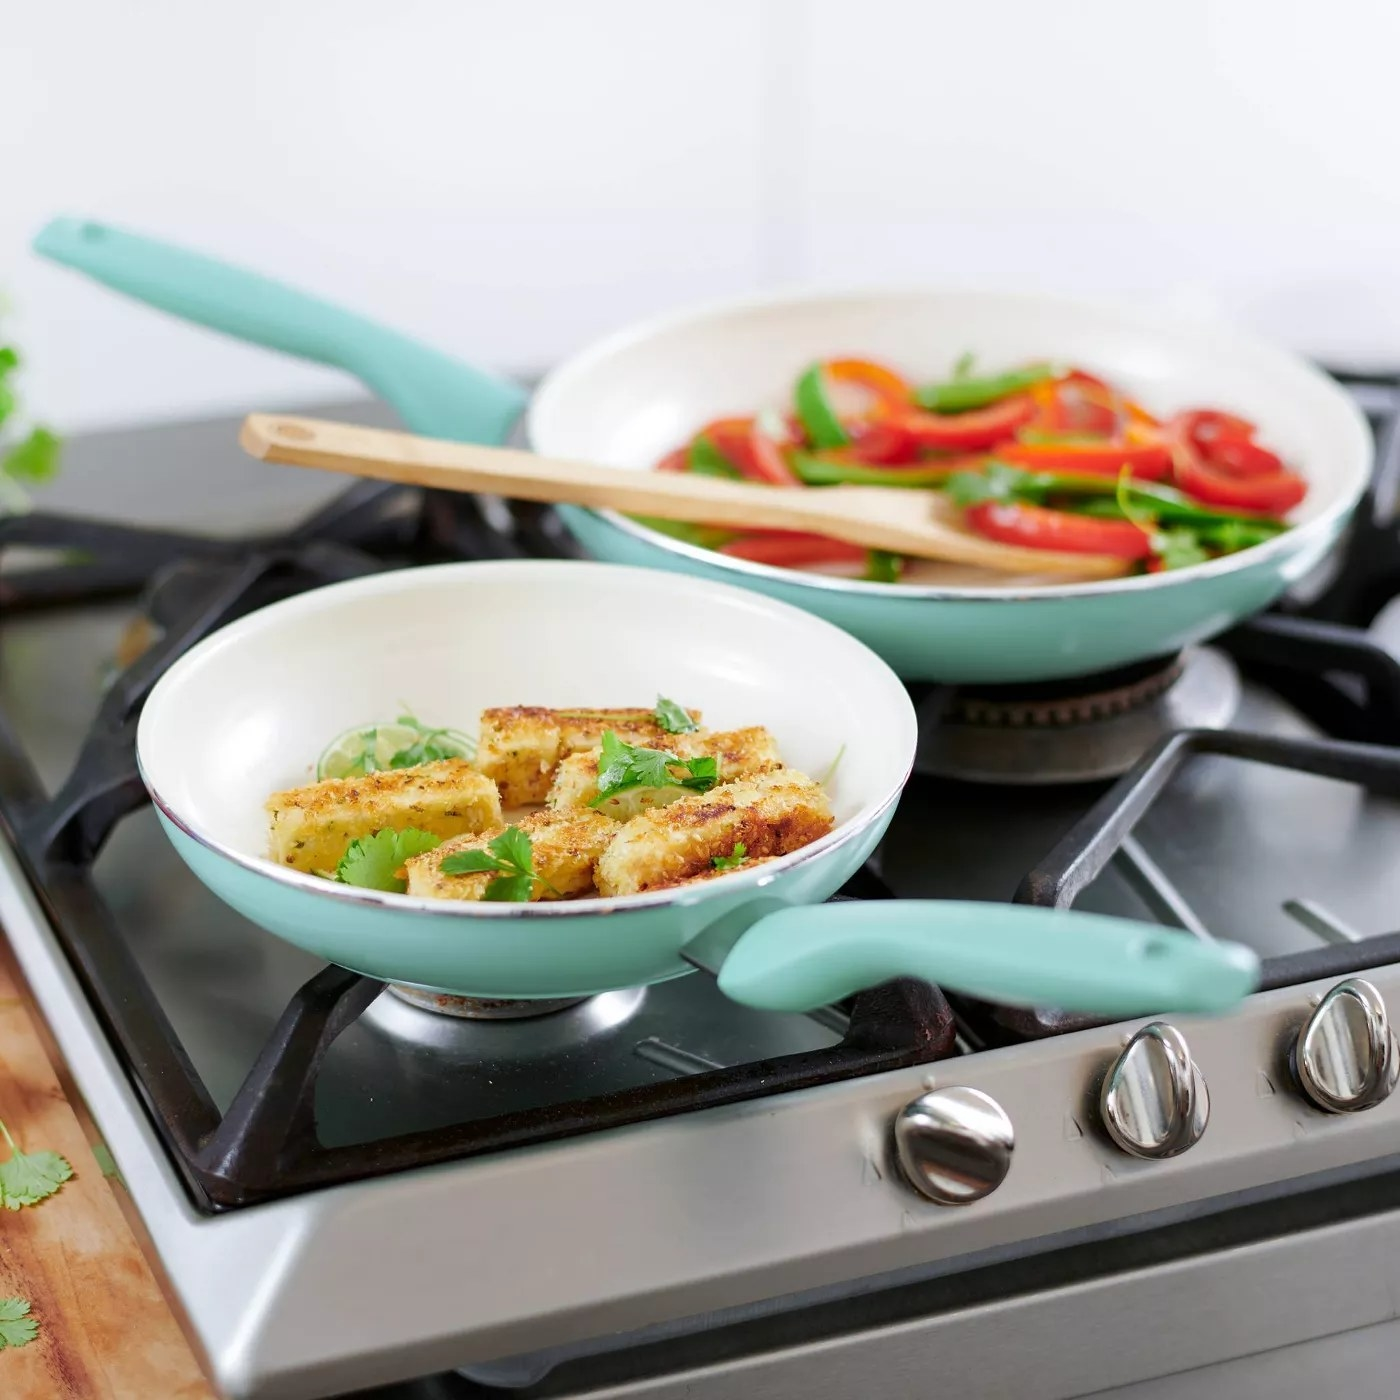 The two pans on stove top with cooked food inside